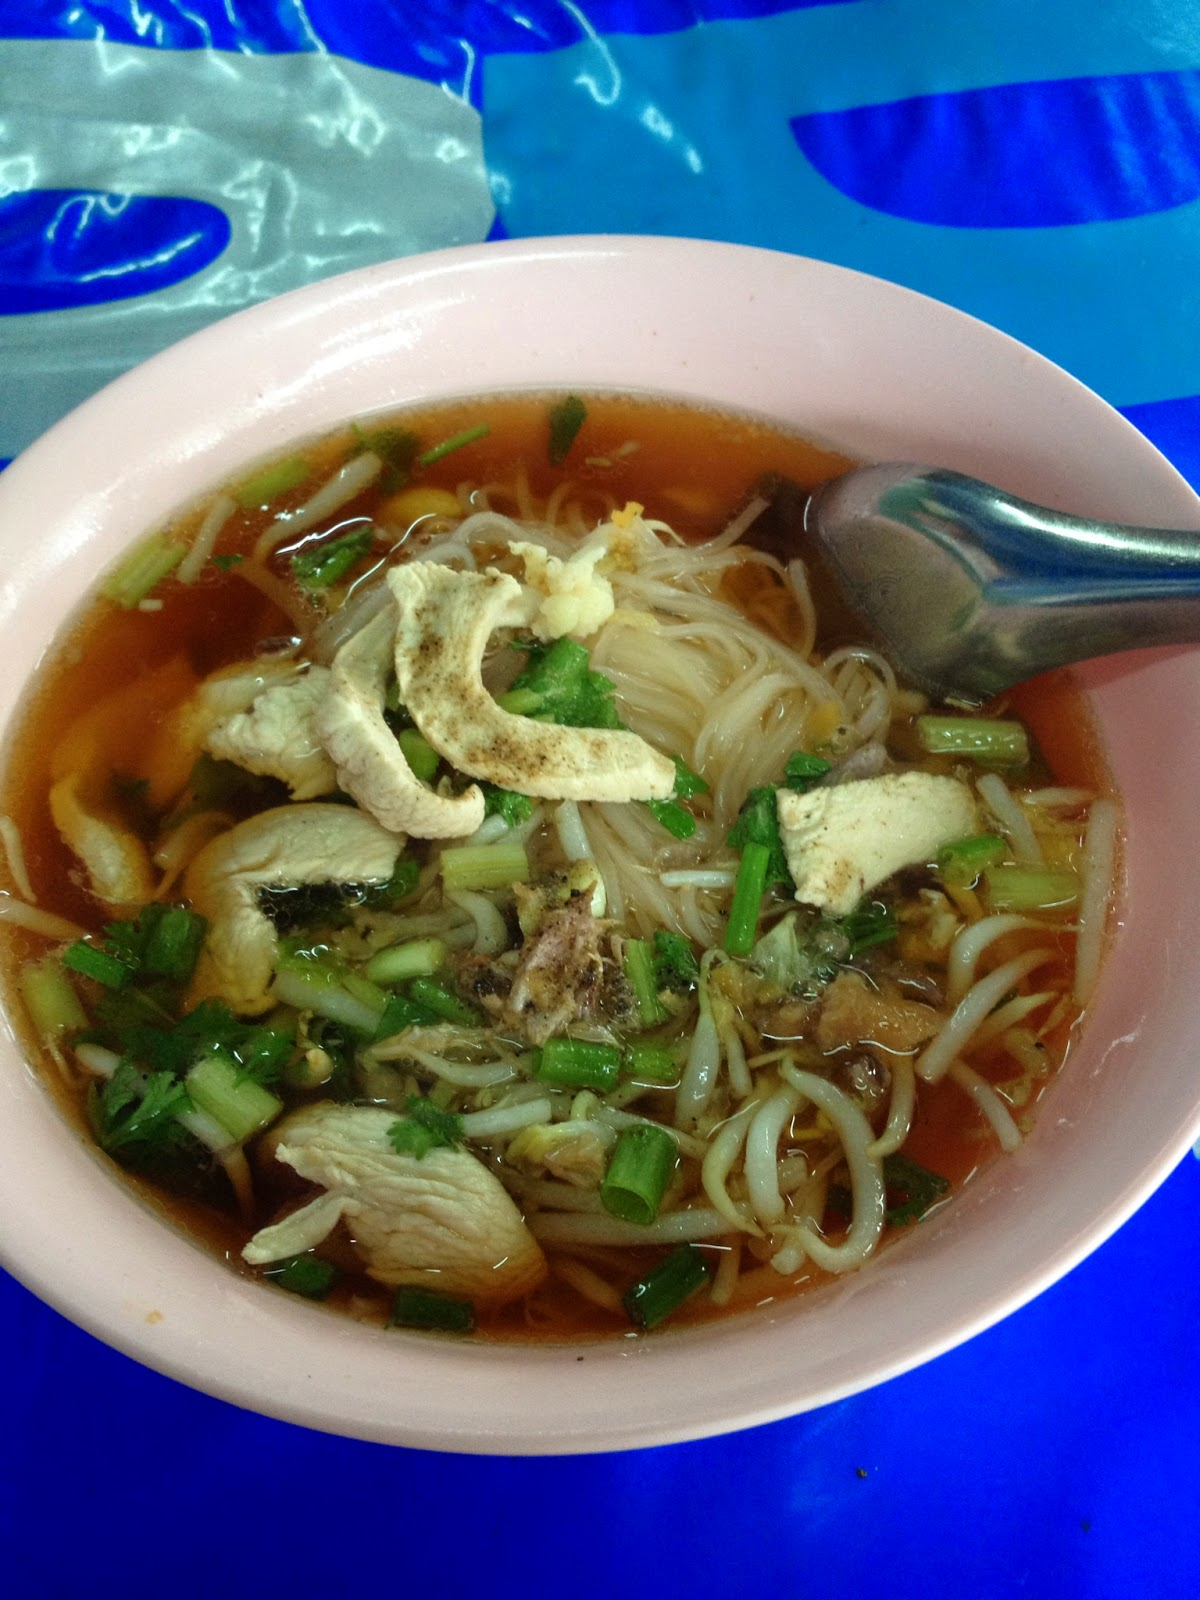 Chiang Mai - Chicken noodle soup. Nothing like hot soup on a hot day!